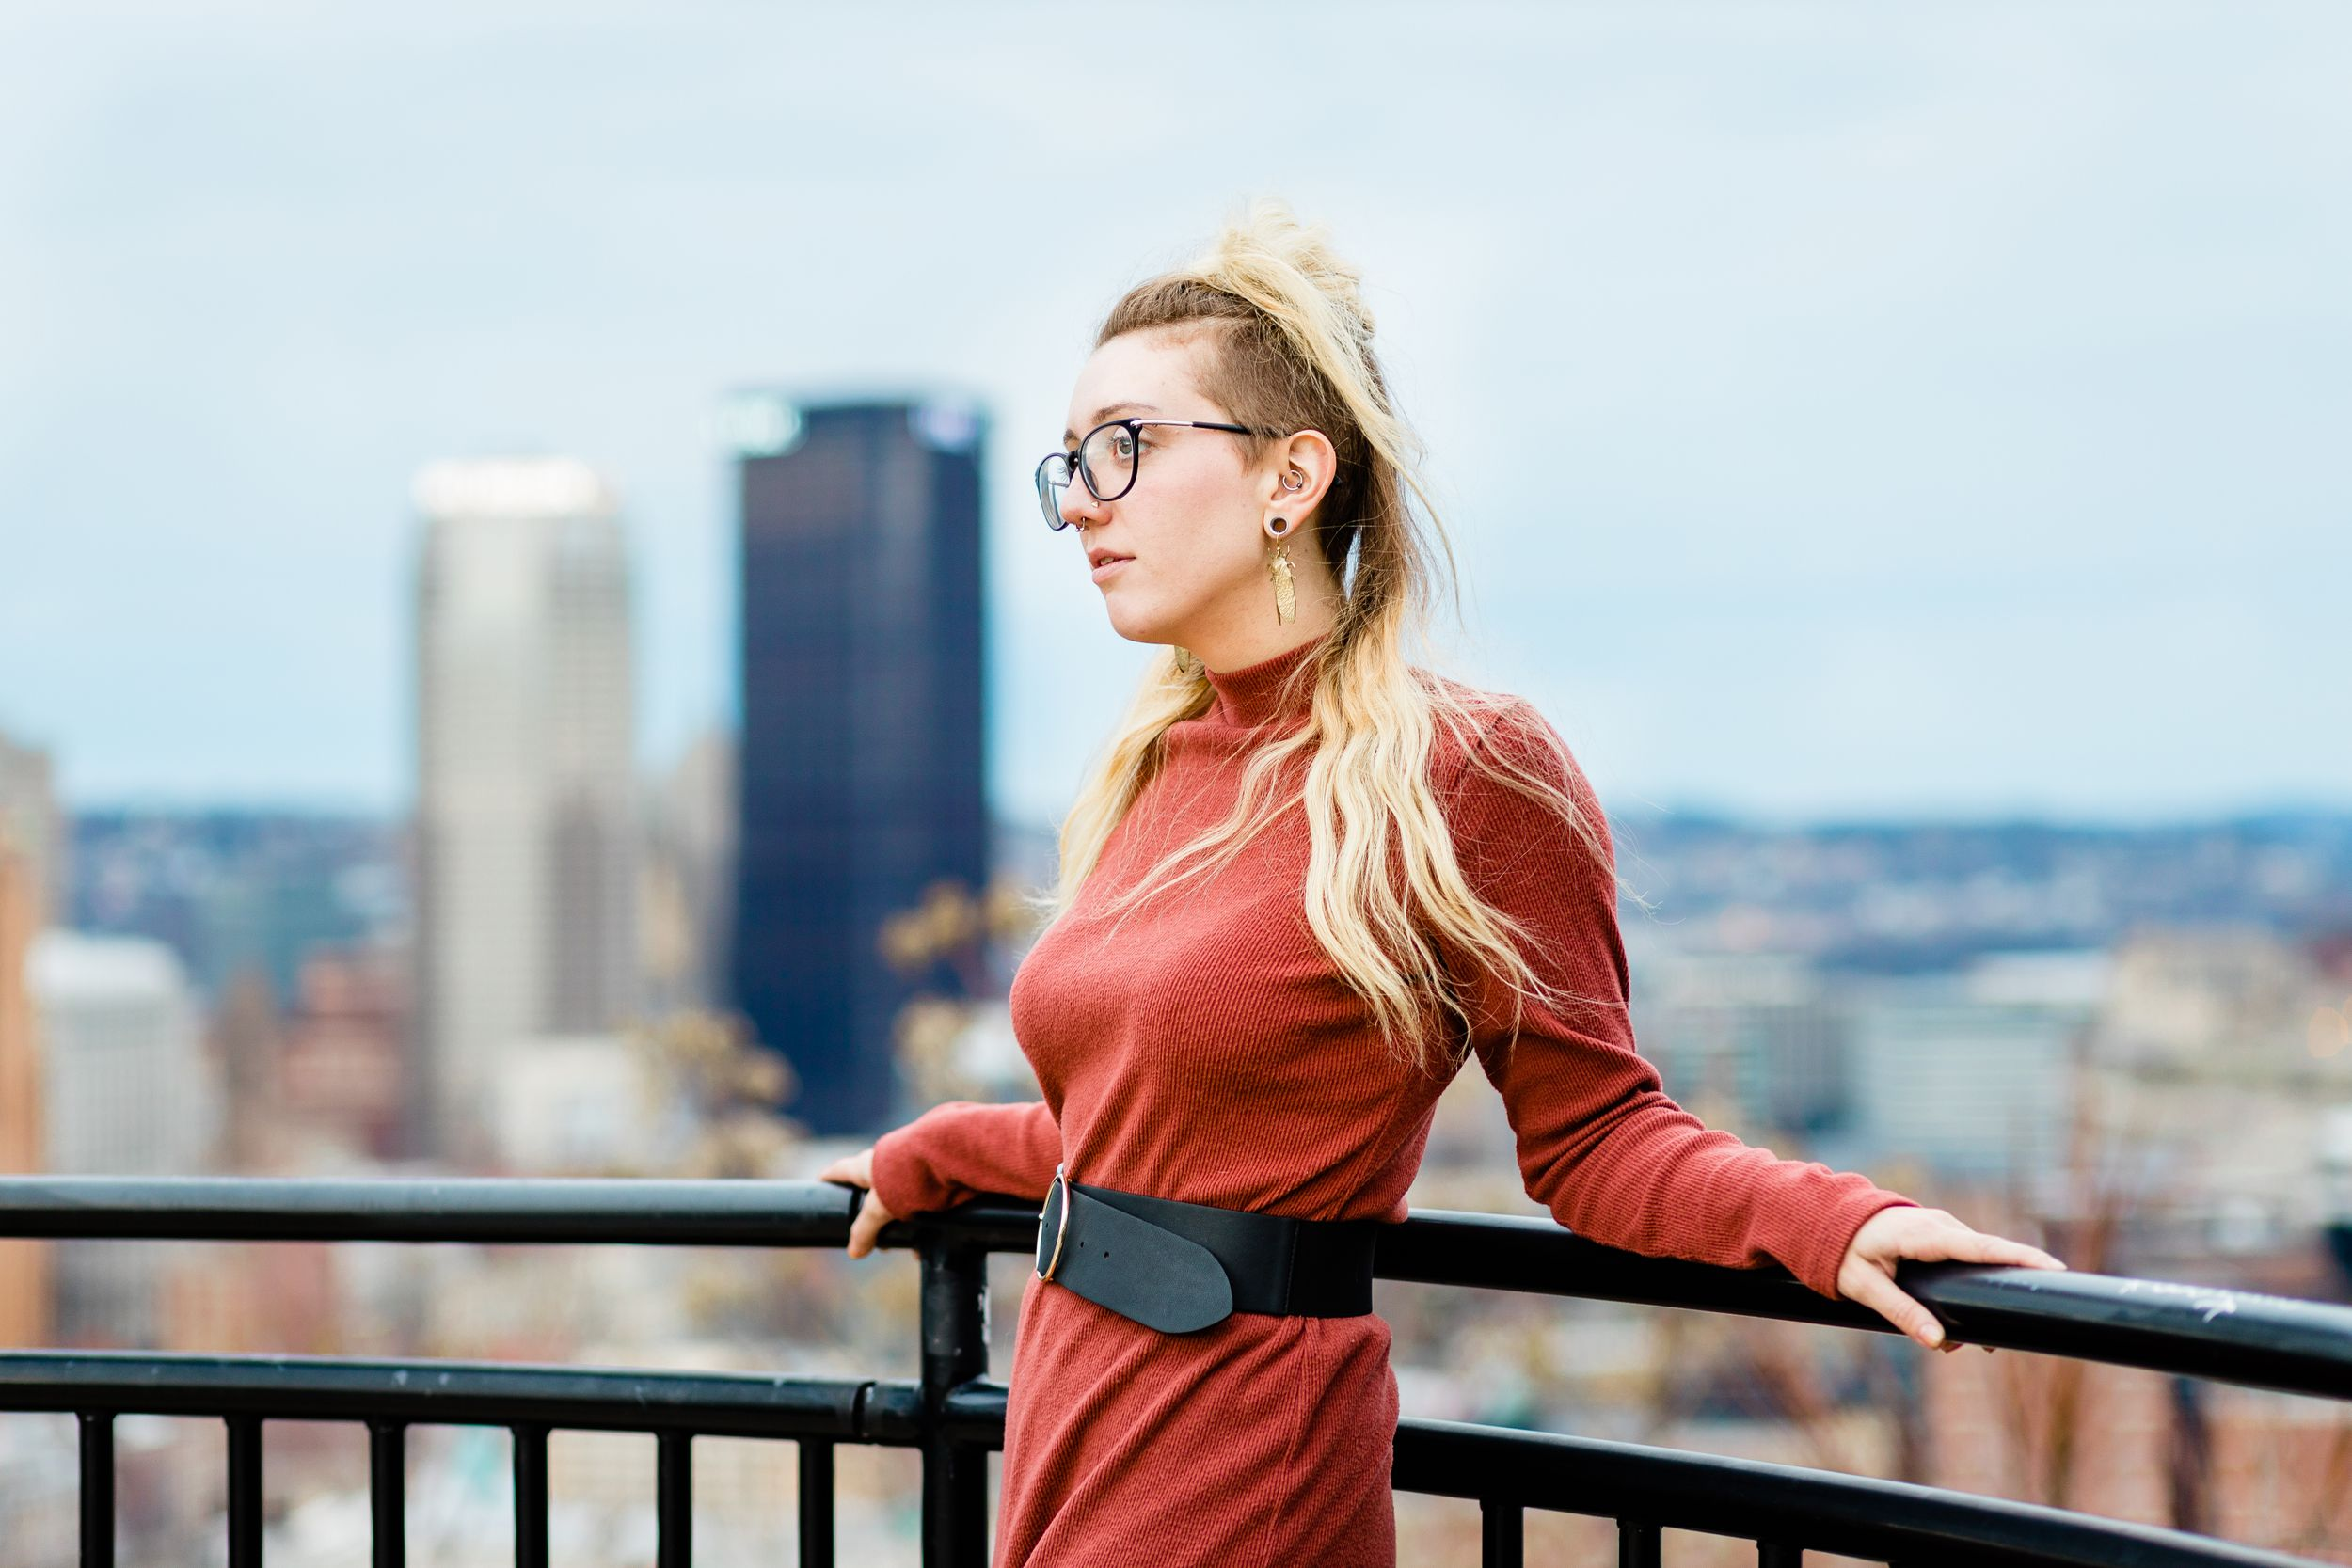 Girl in fashionable orange sweaterdress and beetle earrings poses on a railing in front of the Pittsburgh Skyline